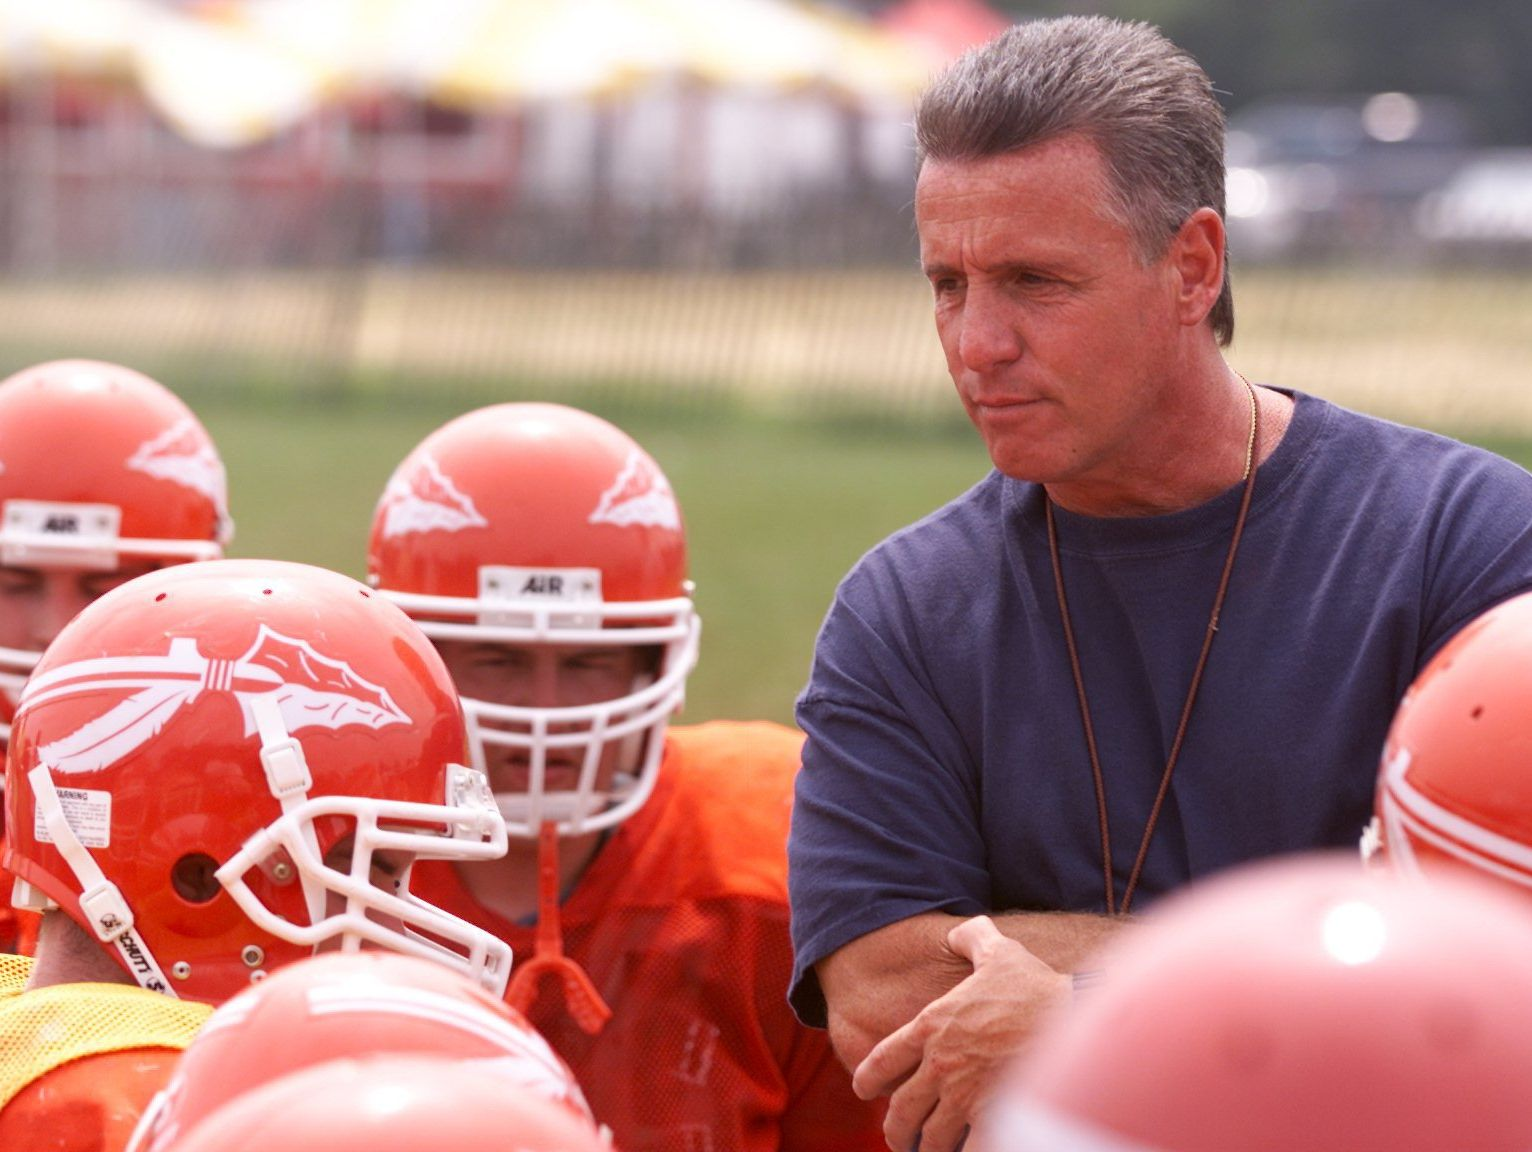 Keyport coach Mike Ciccotelli's Keyport Red Raiders won back-to-back state titles in 1987 and 1988.